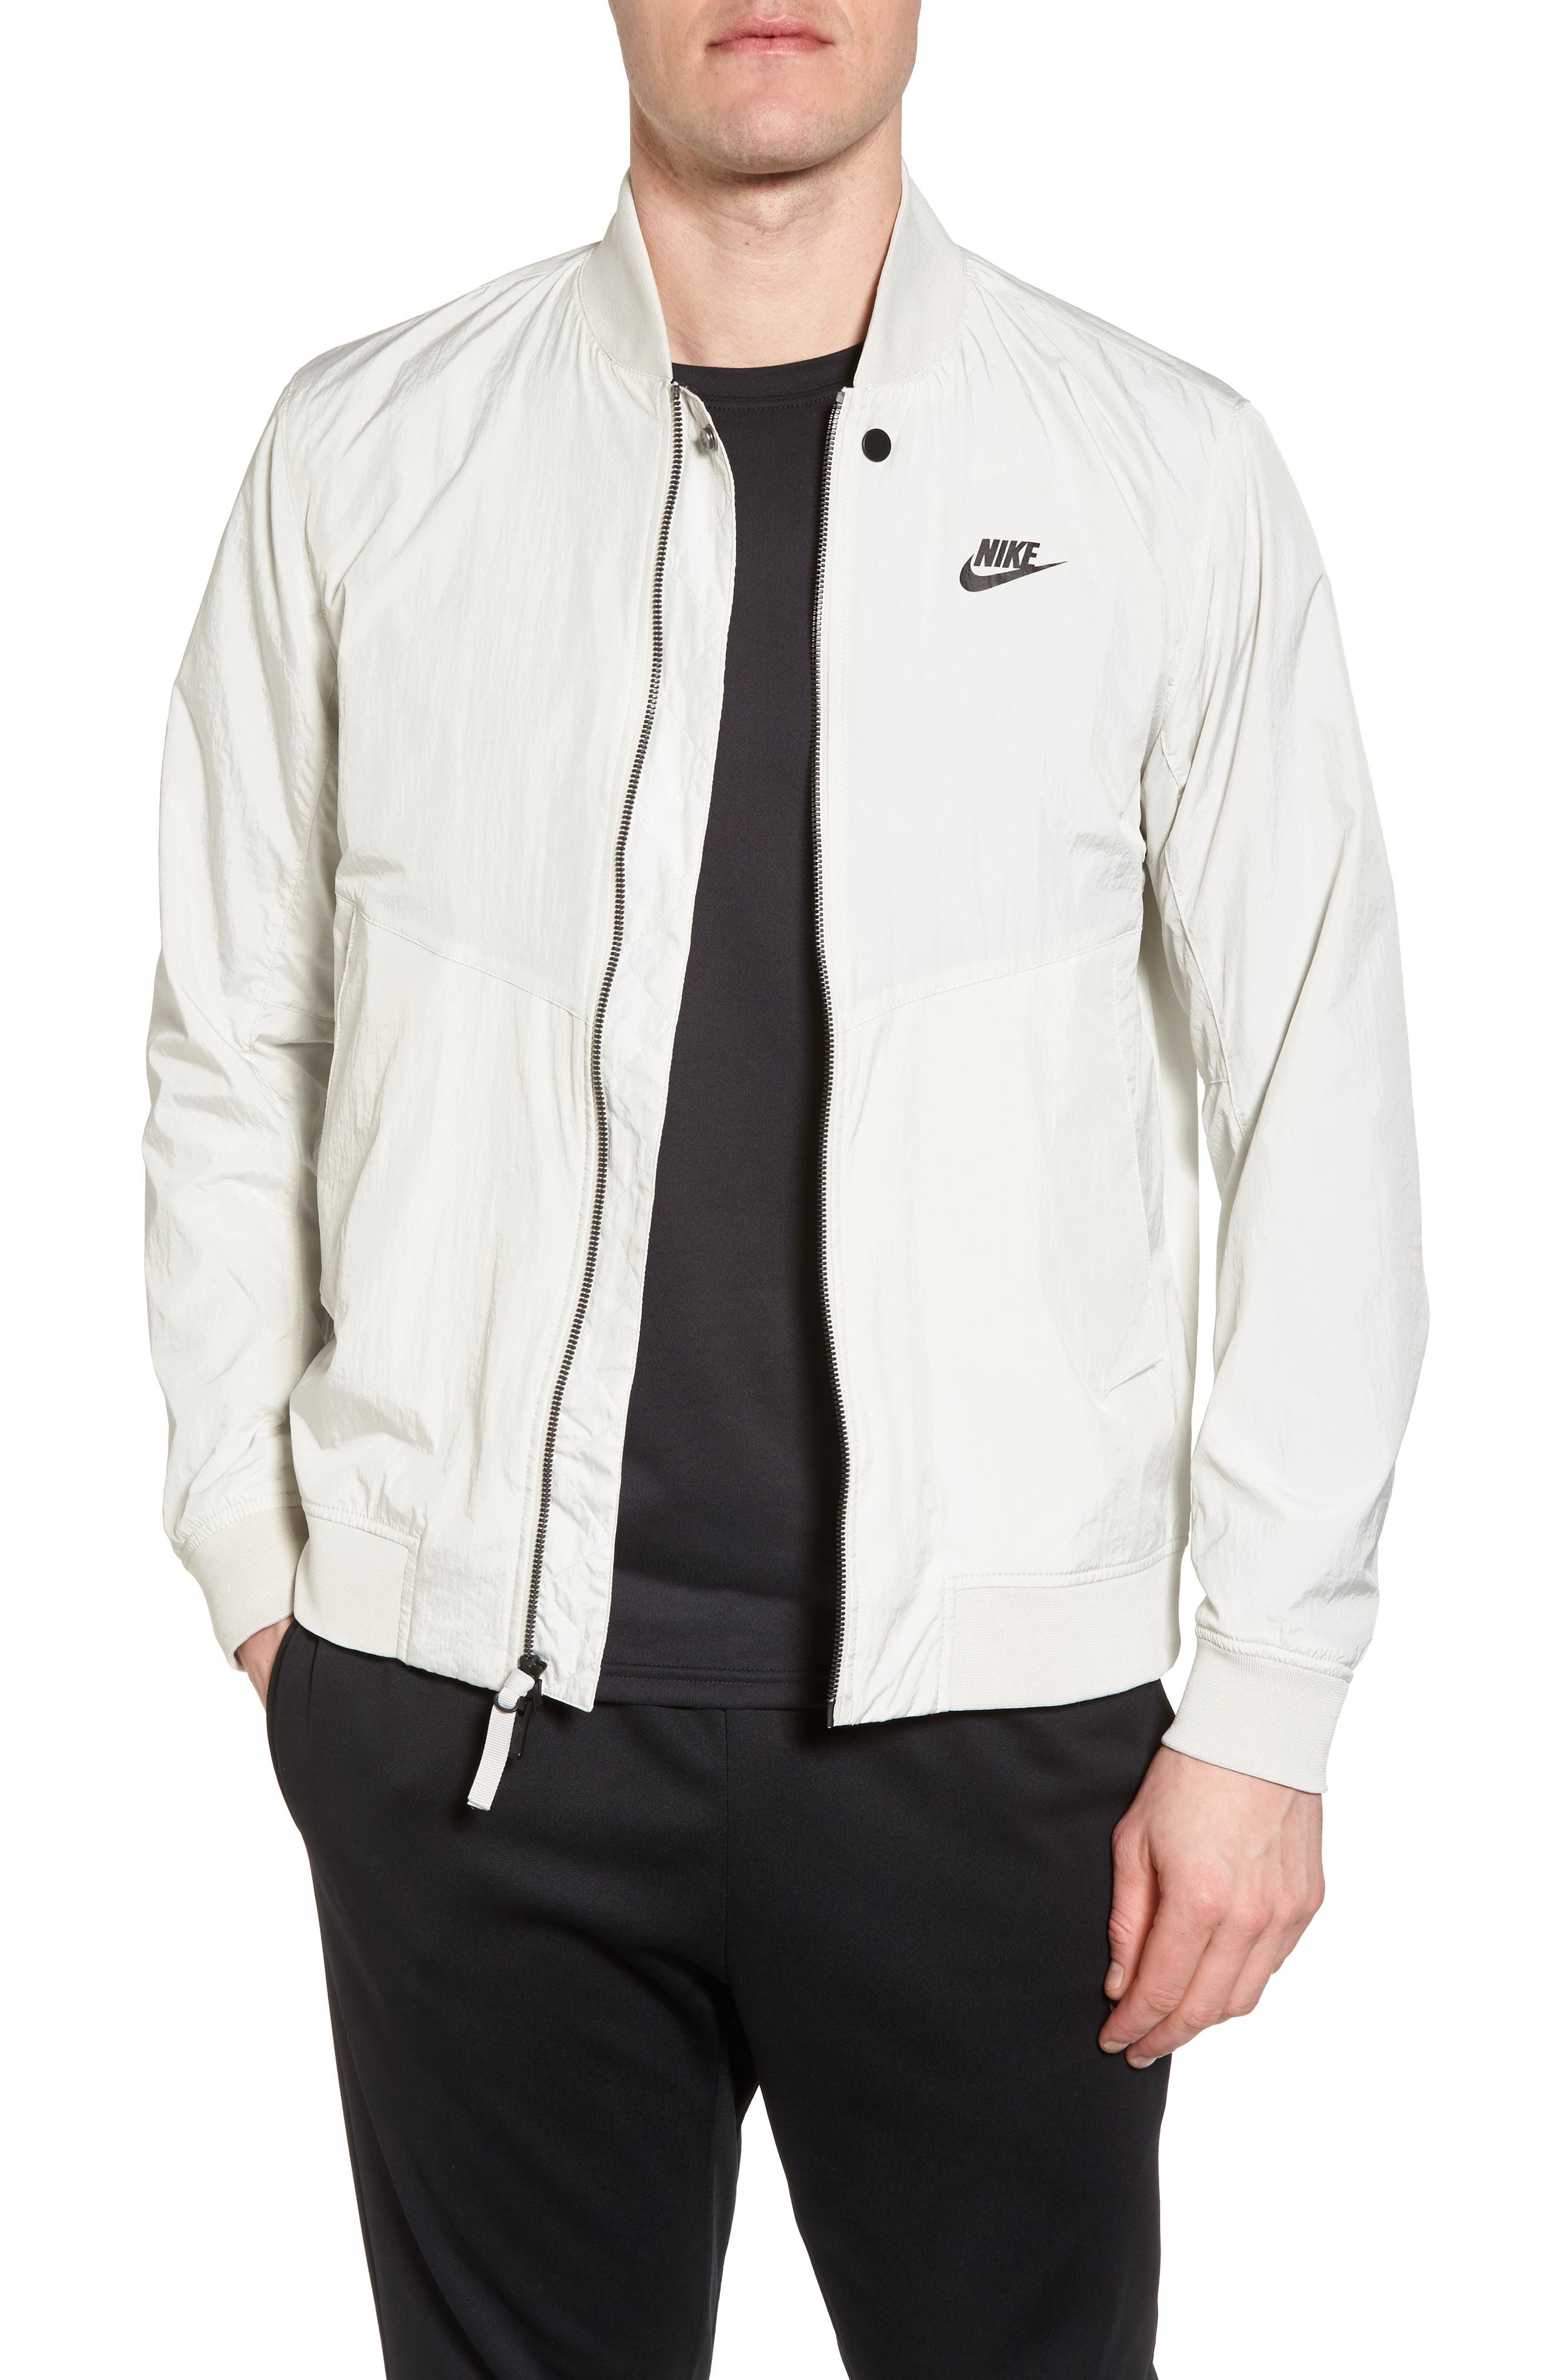 NSW Franchise Varsity Jacket,                             Main thumbnail 1, color,                             Light Bone/ Light Bone/ Black